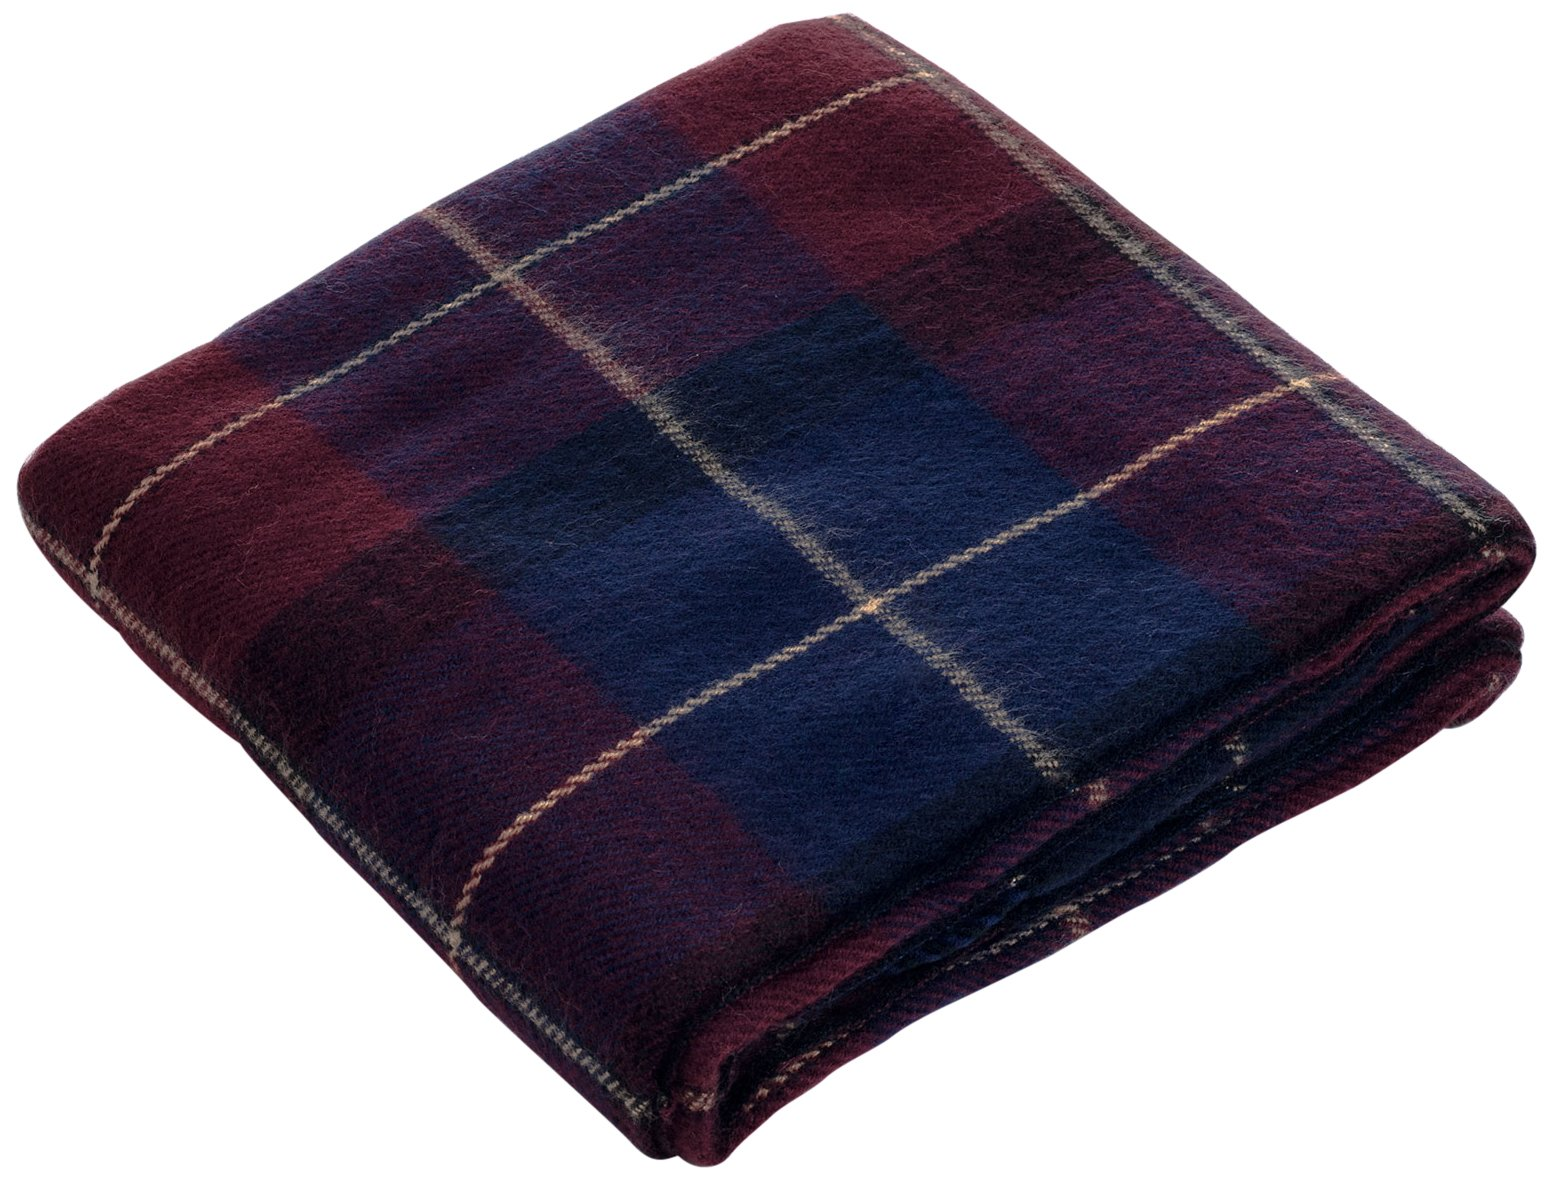 Lavish Home Throw Blanket, Cashmere-Like, Blue/Red - Material: 100% Acrylic Pattern: Plaid Style: Cashmere-like - blankets-throws, bedroom-sheets-comforters, bedroom - 81a%2BJALpyeL -